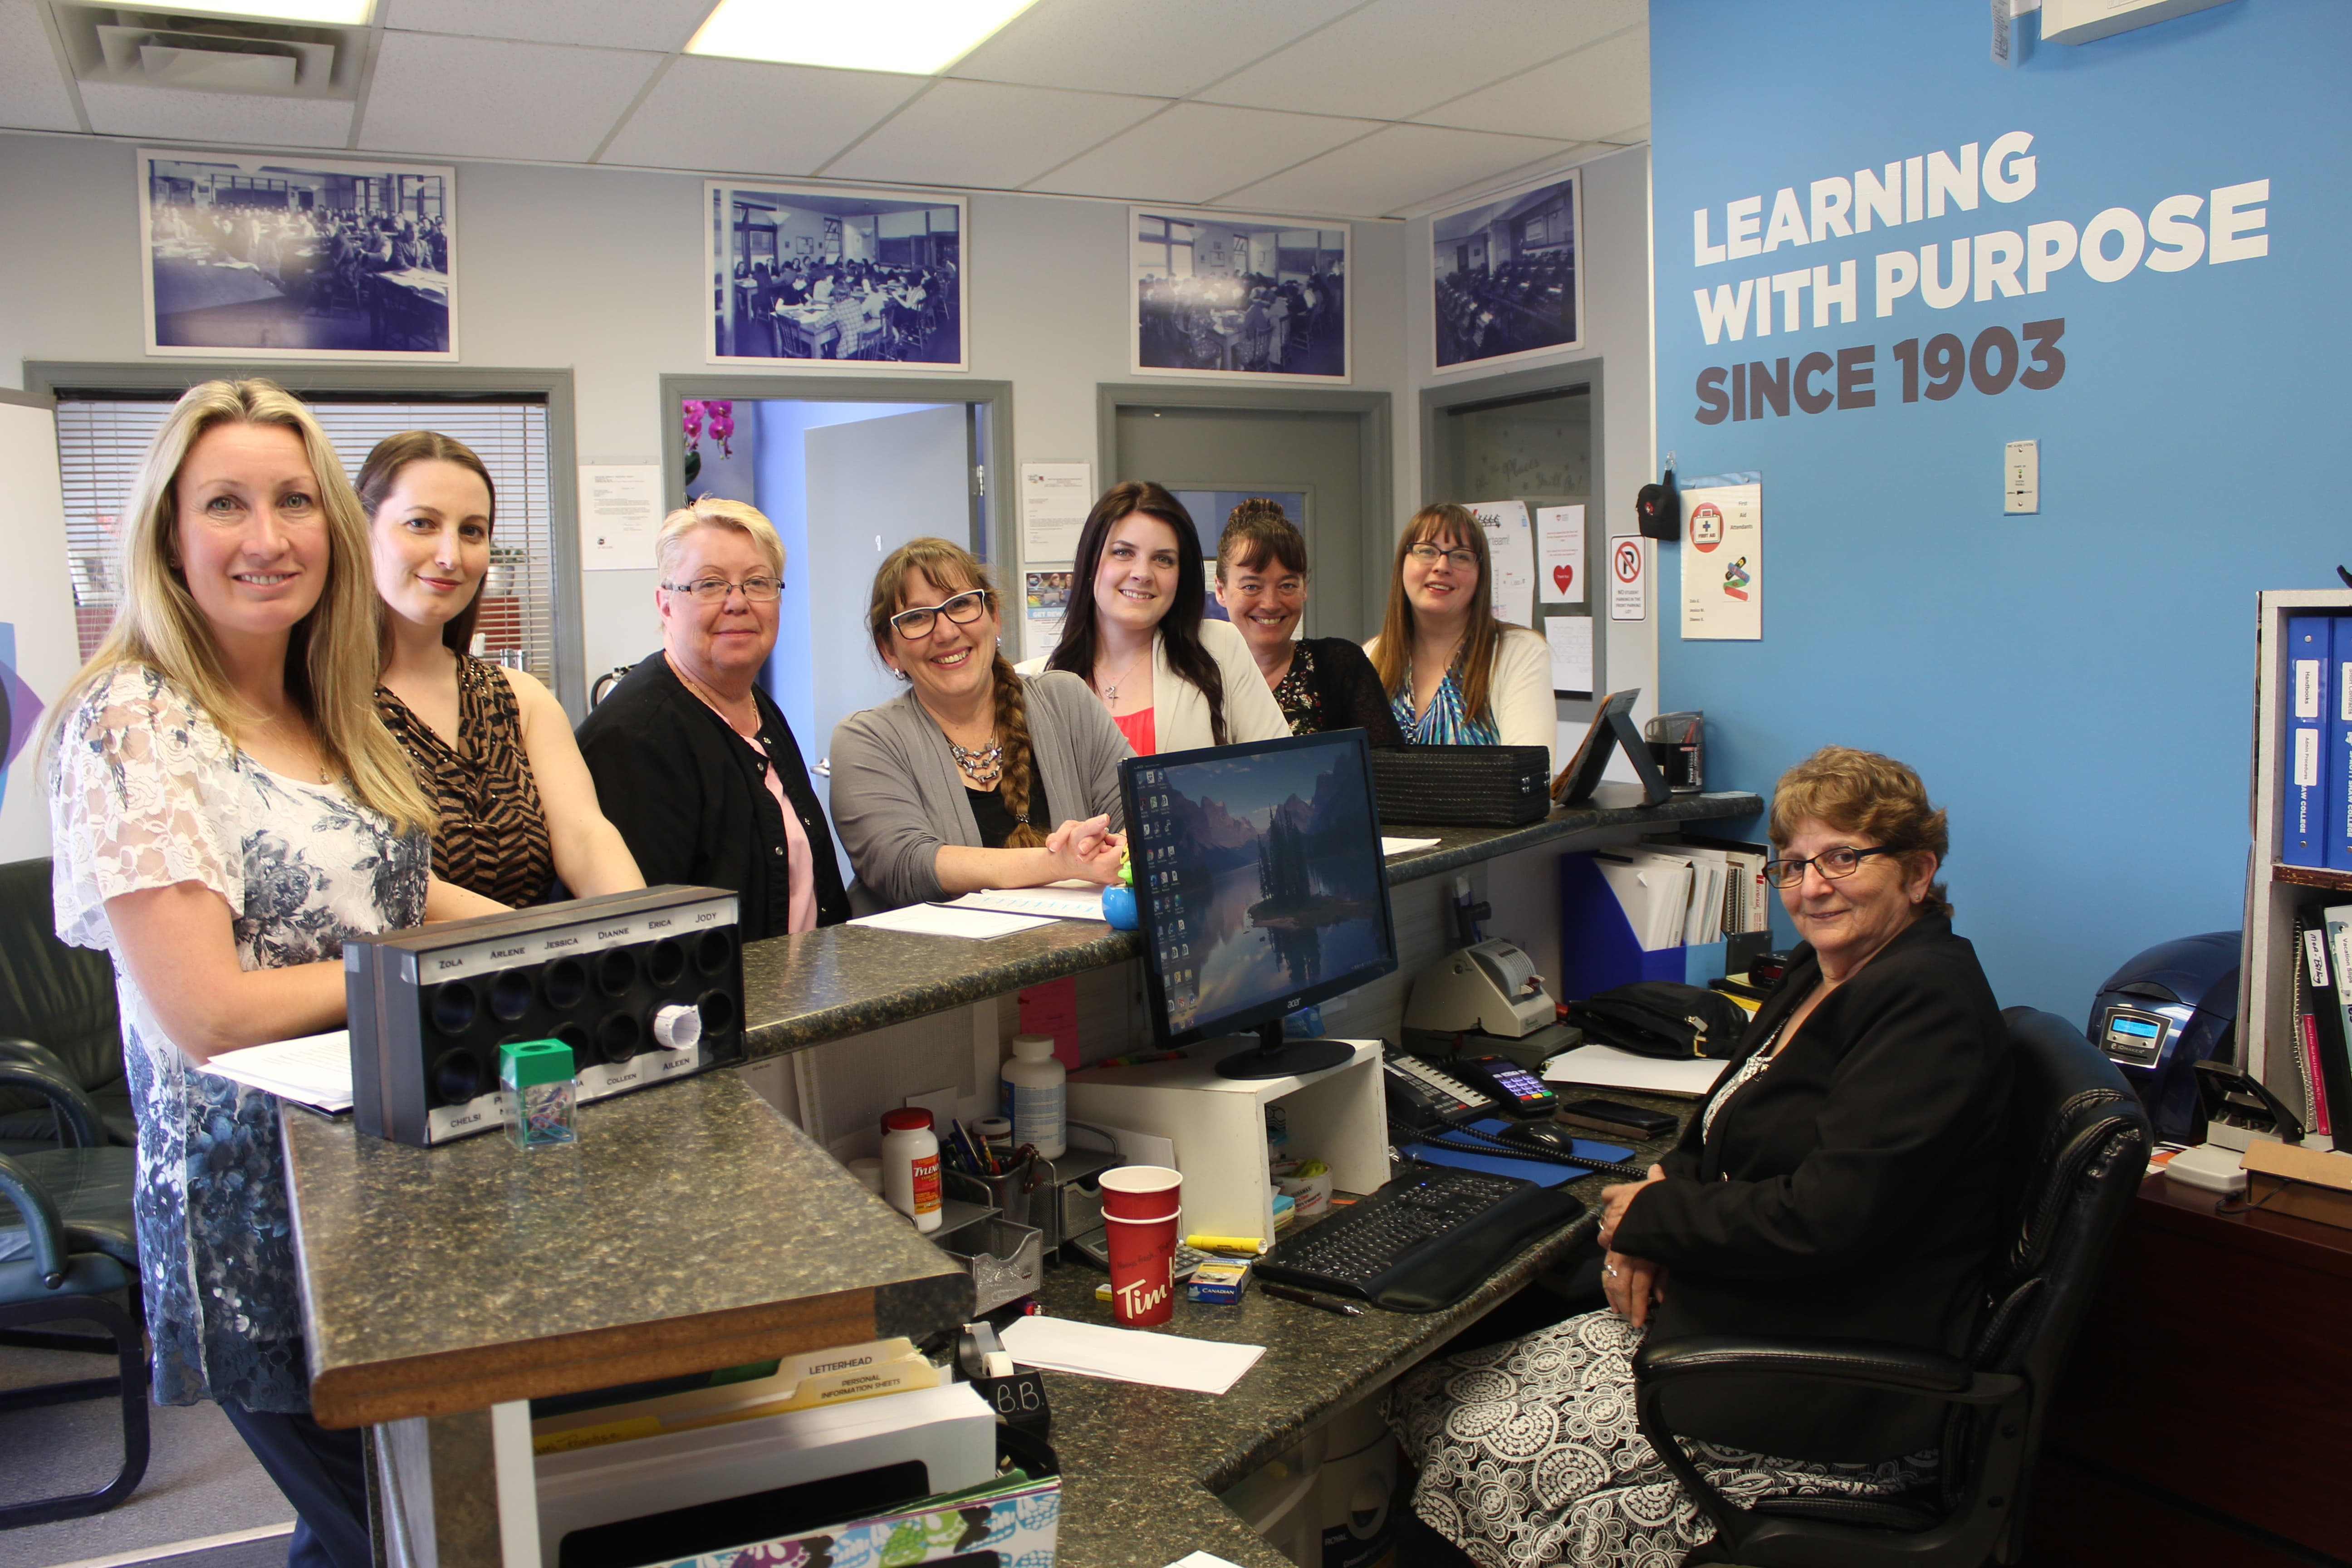 sprott shaw college penticton campus students and staff